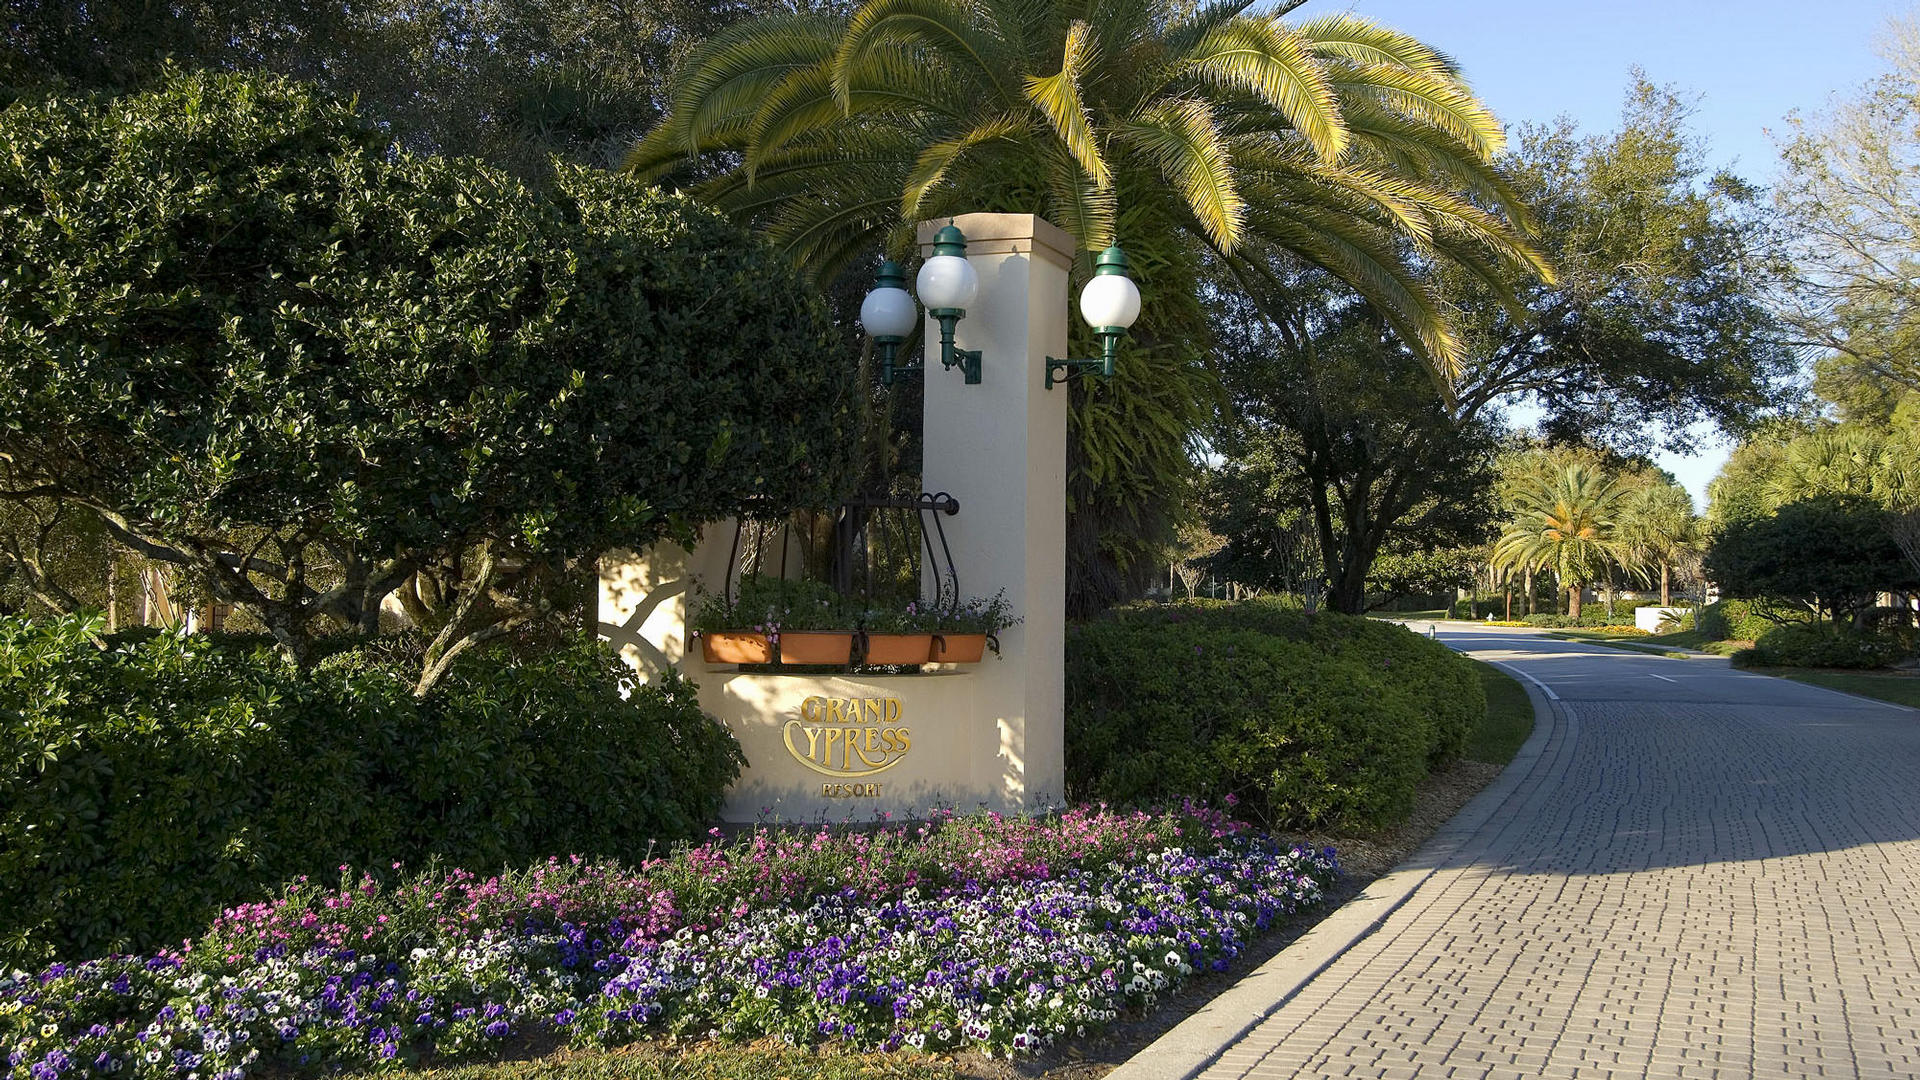 Entrance To Villas Of Grand Cypress Resort & Spa in Orlando